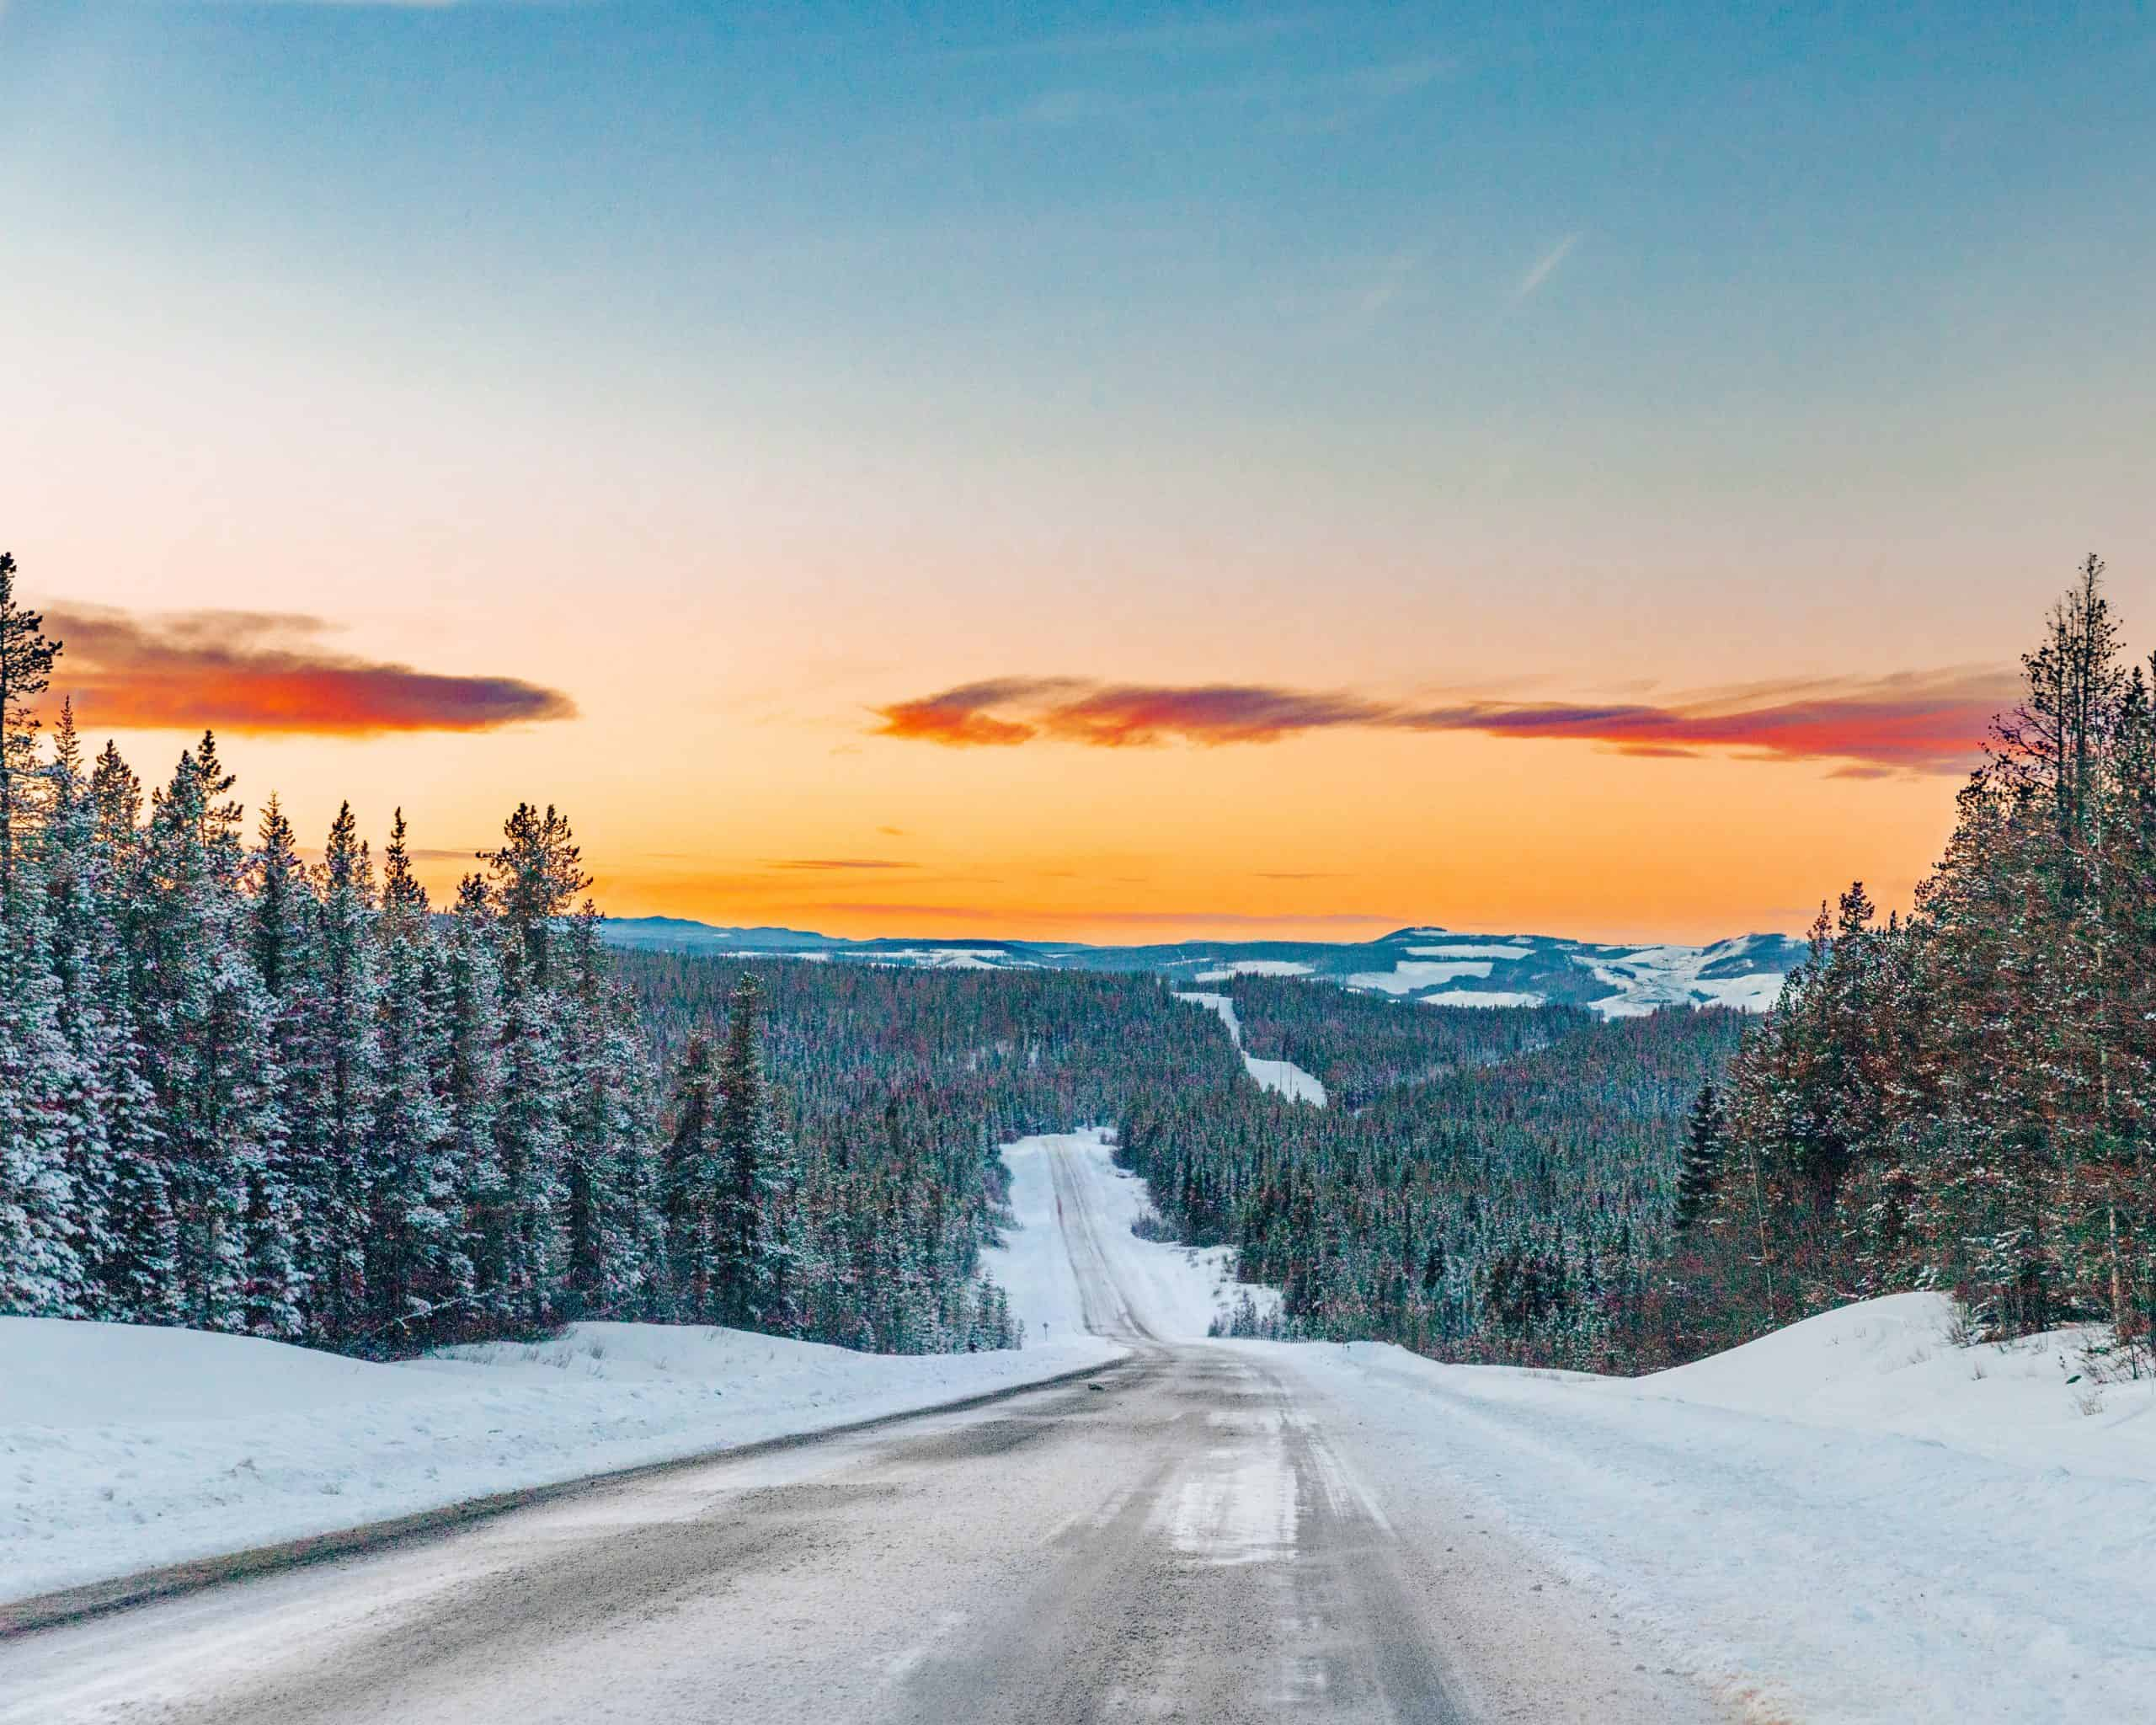 Sunset on snow-covered icefields parkway, Canada - Best Things to do in Jasper in Winter